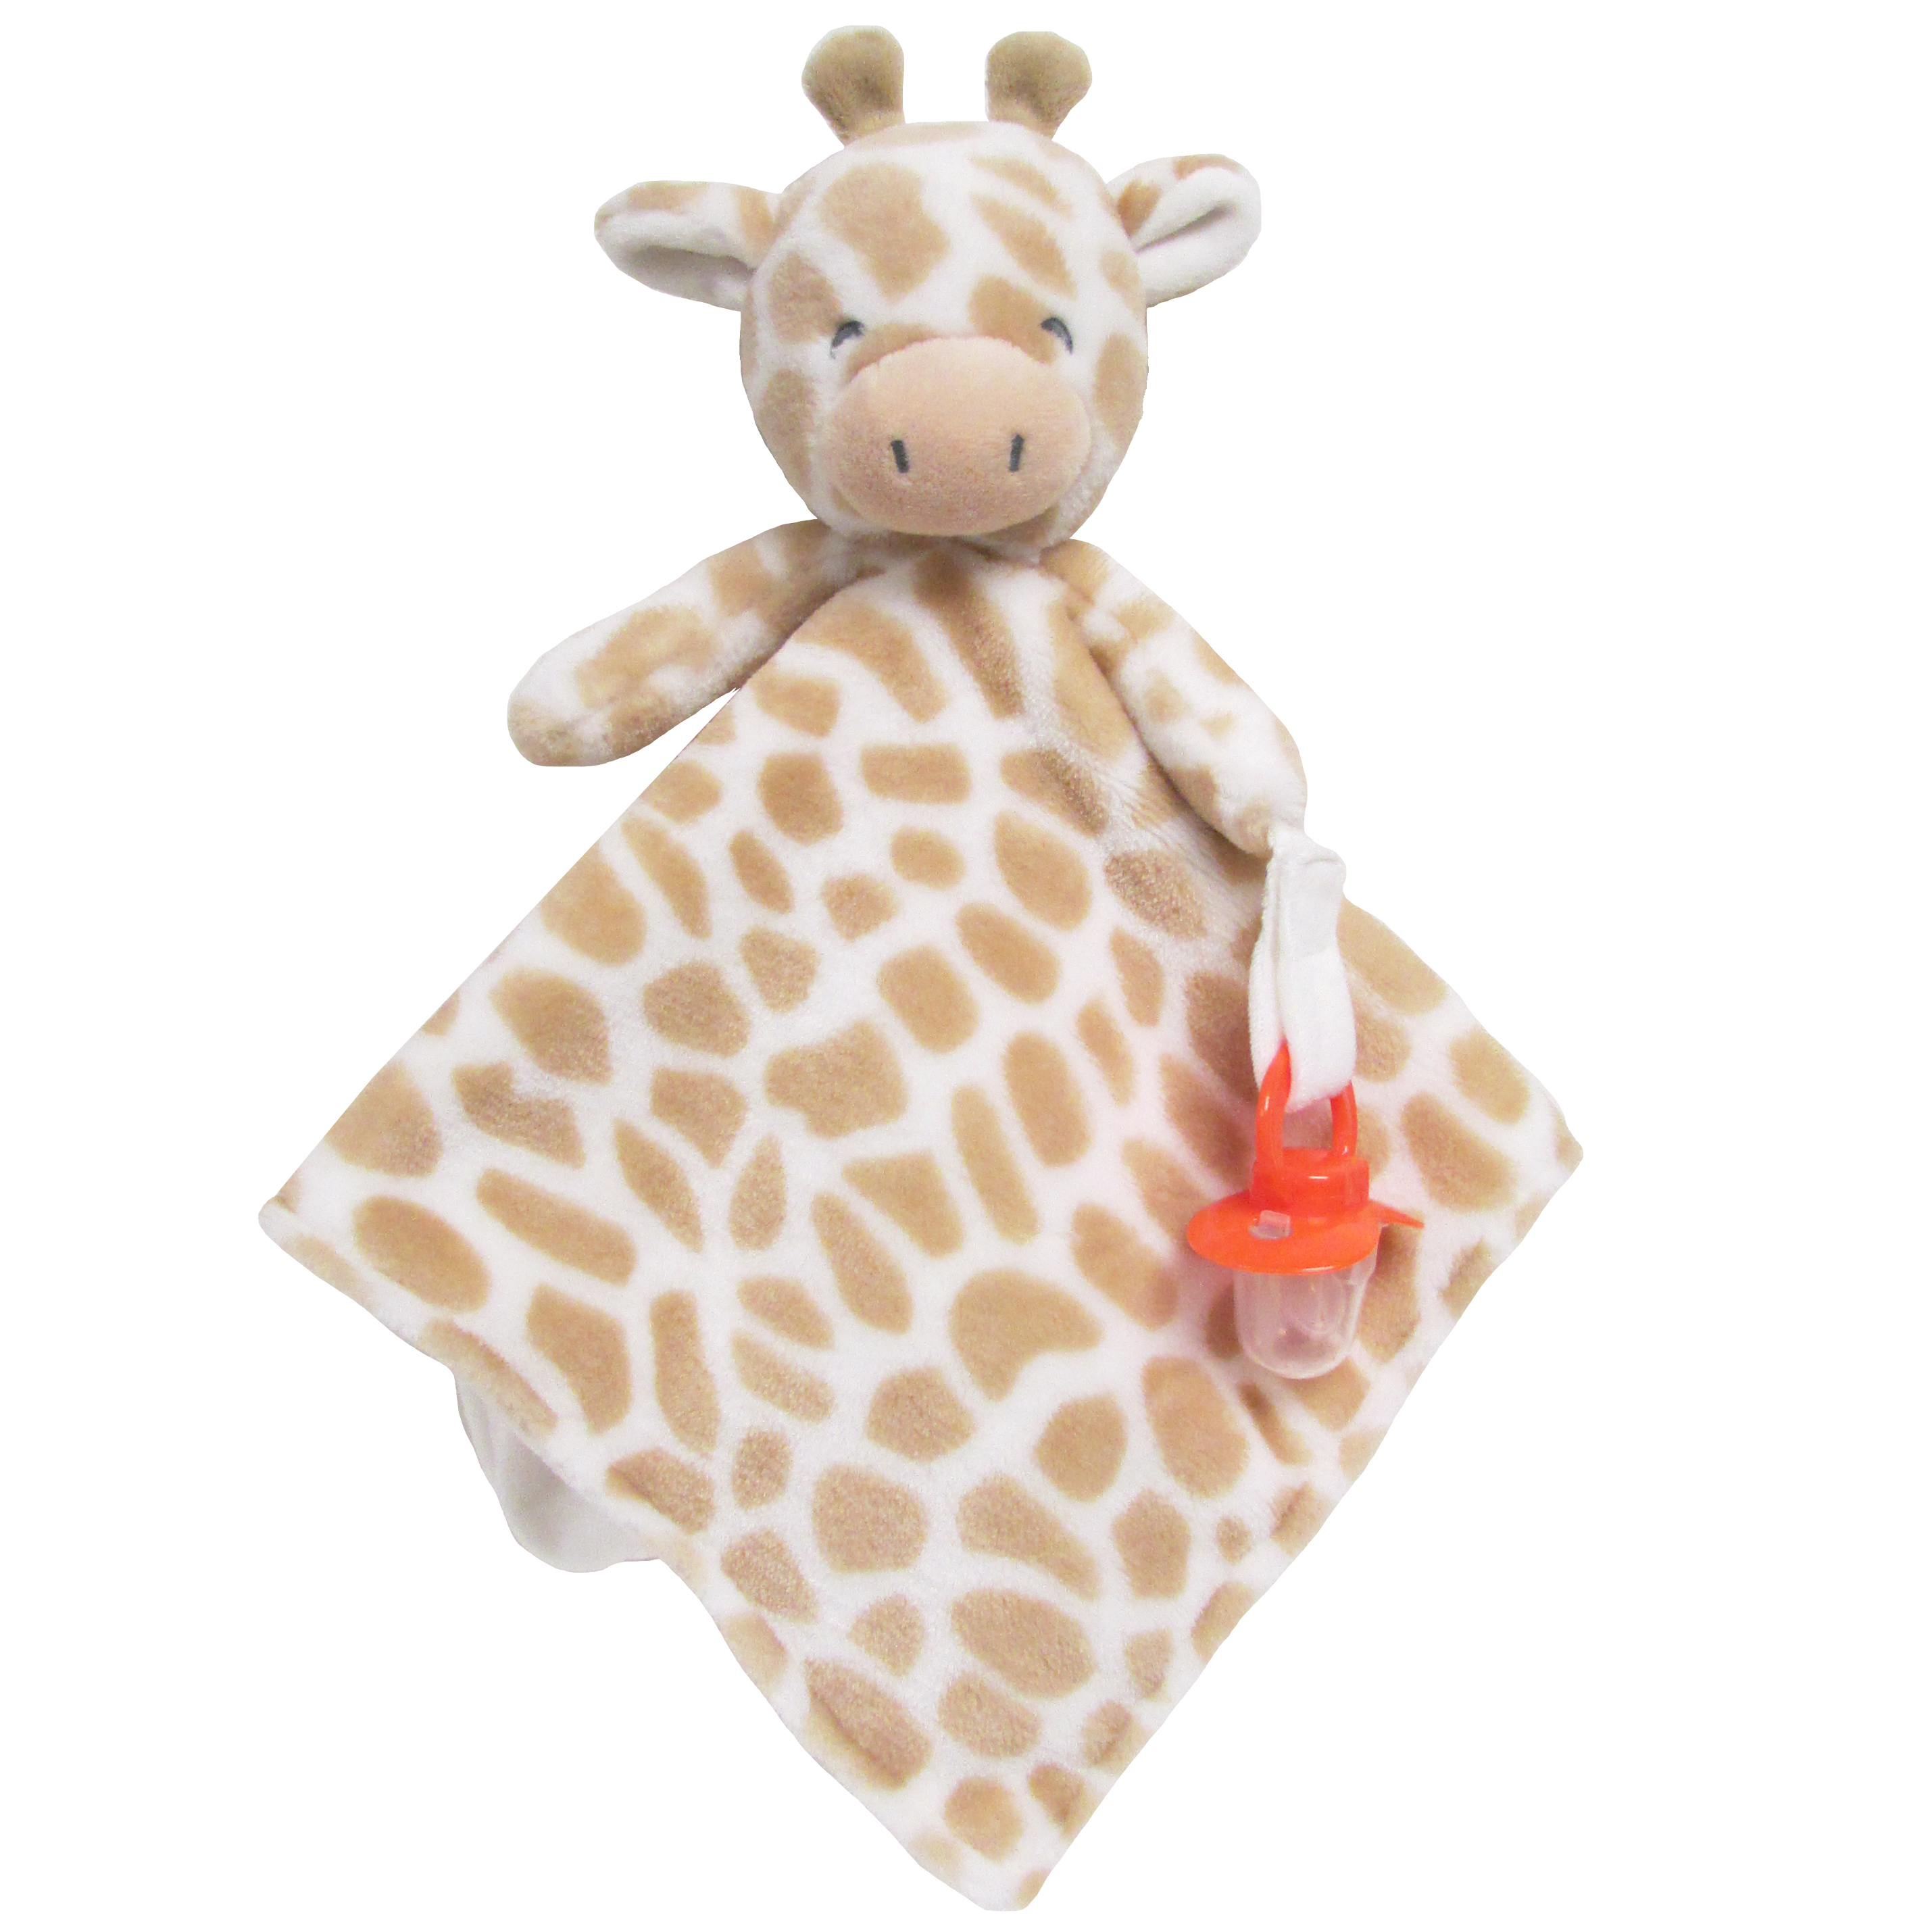 Carter's Giraffe Cuddle Plush